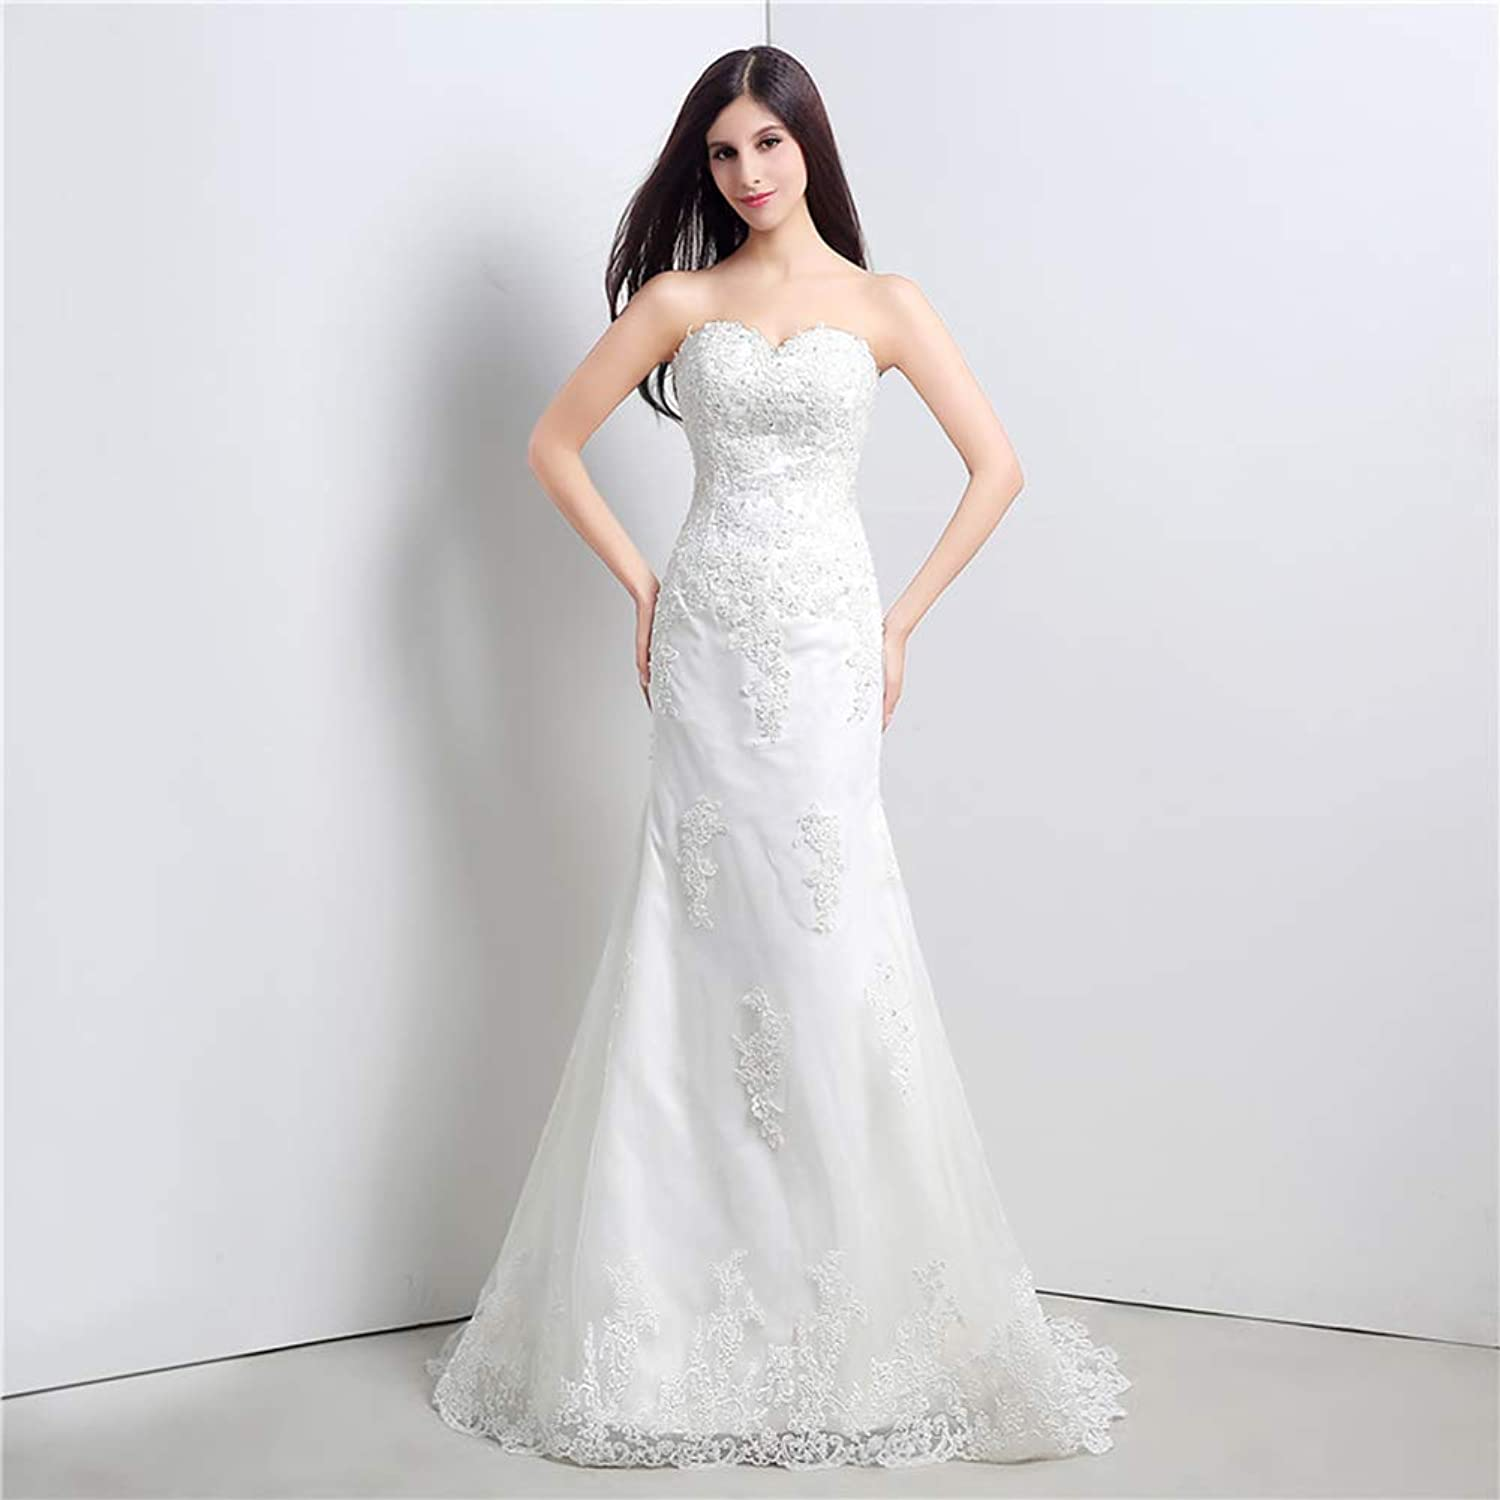 Women's Wedding Lace VNeck Shoulder Puff Princess Wedding Dress Adult Dress Evening Gown,US22W